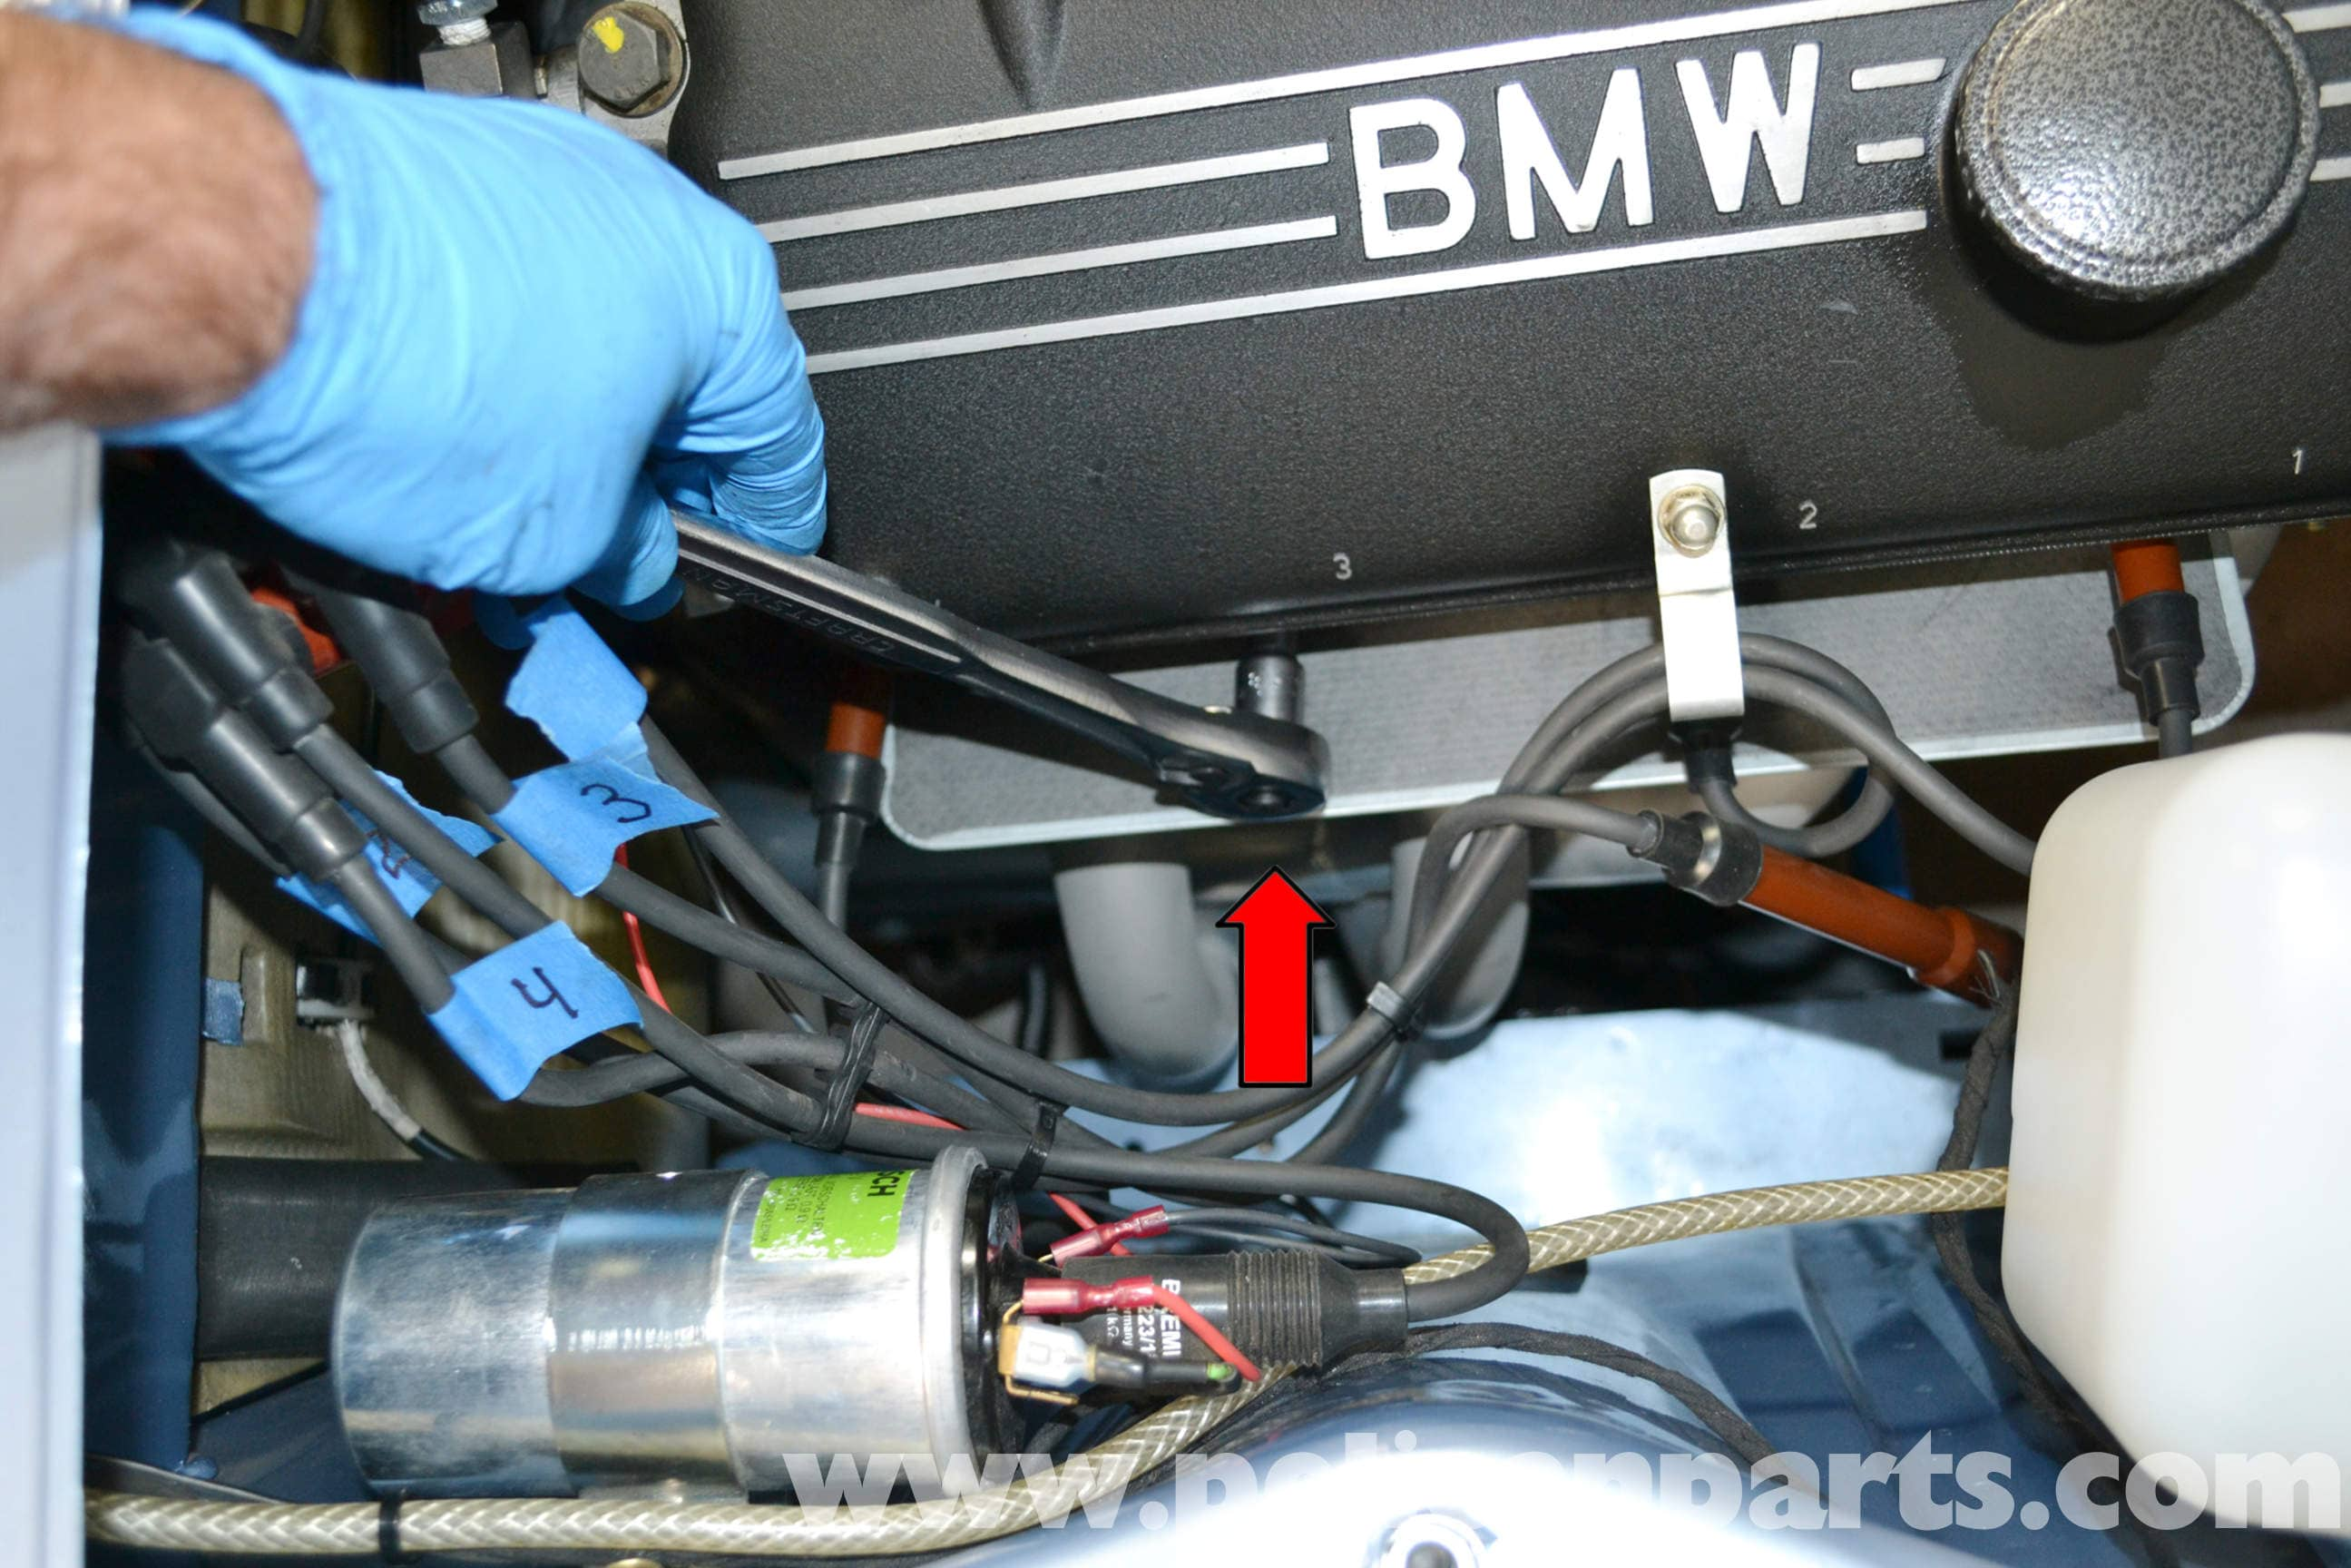 Bmw 2002 Spark Plugs And Wire Replacement 1966 1976 Pelican E30 M10 Wiring Diagram Large Image Extra